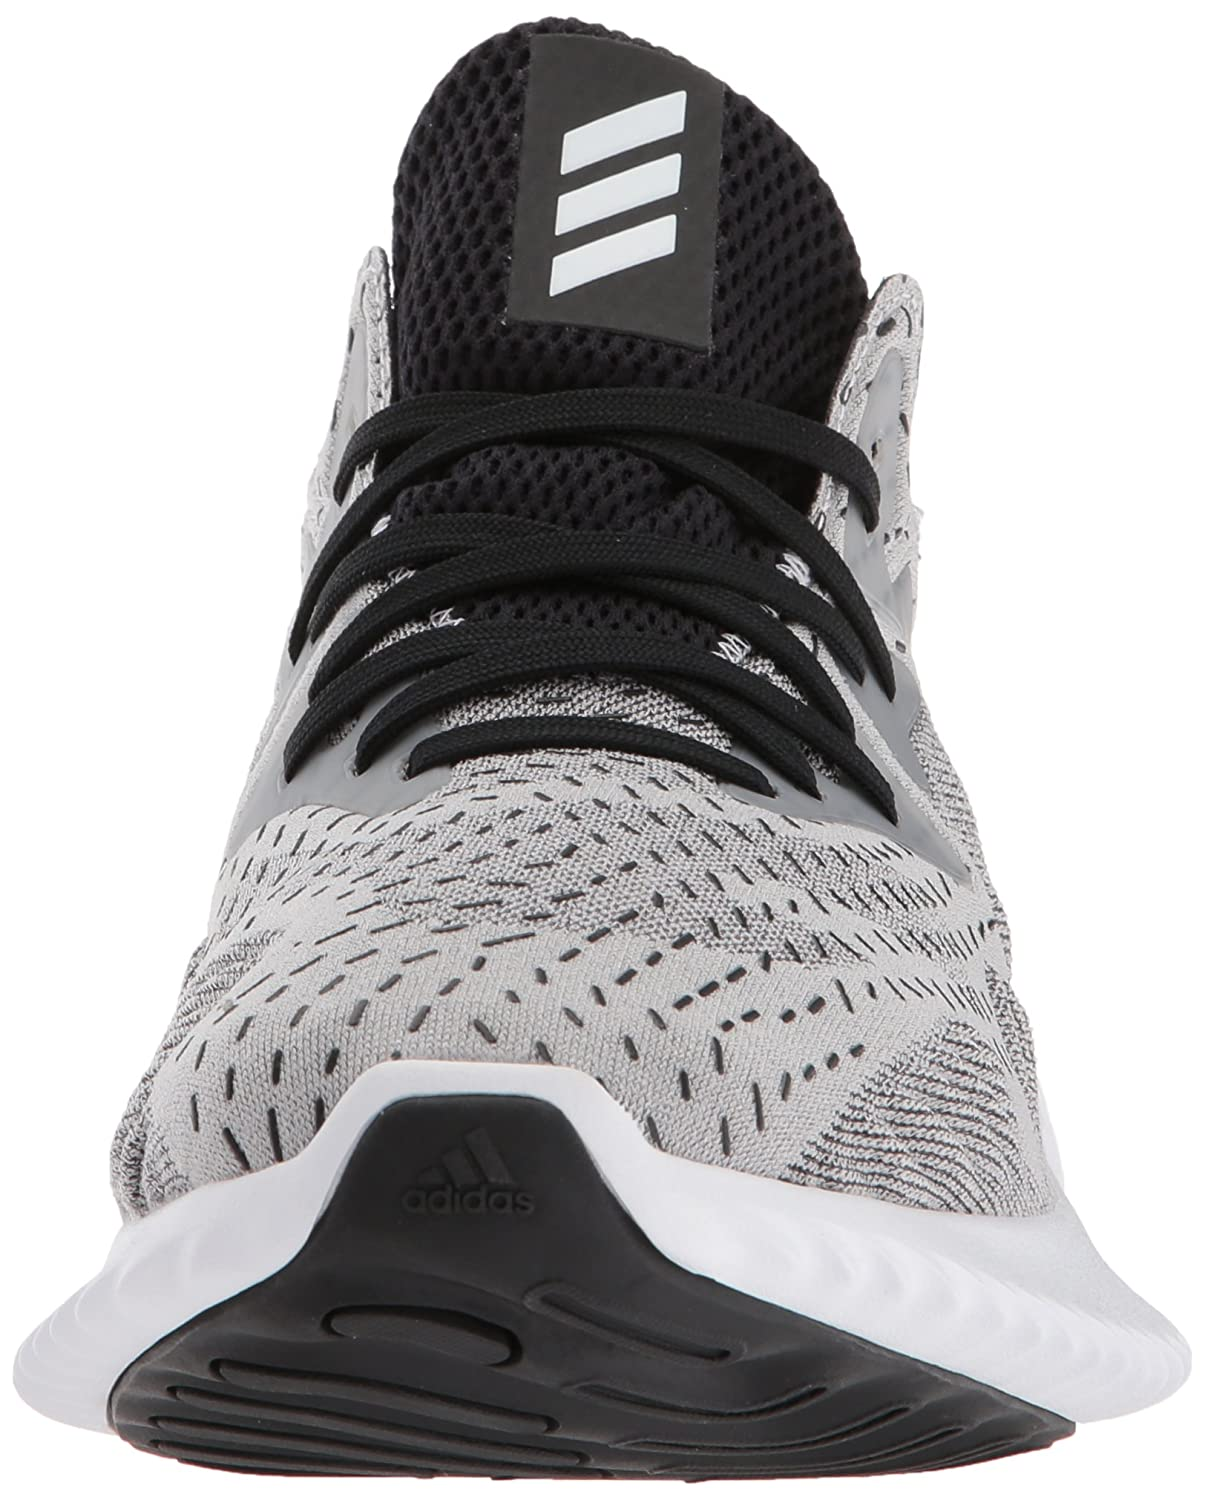 check out 7d425 f1cfc Amazon.com  adidas Alphabounce Beyond m Running Shoe  Road R